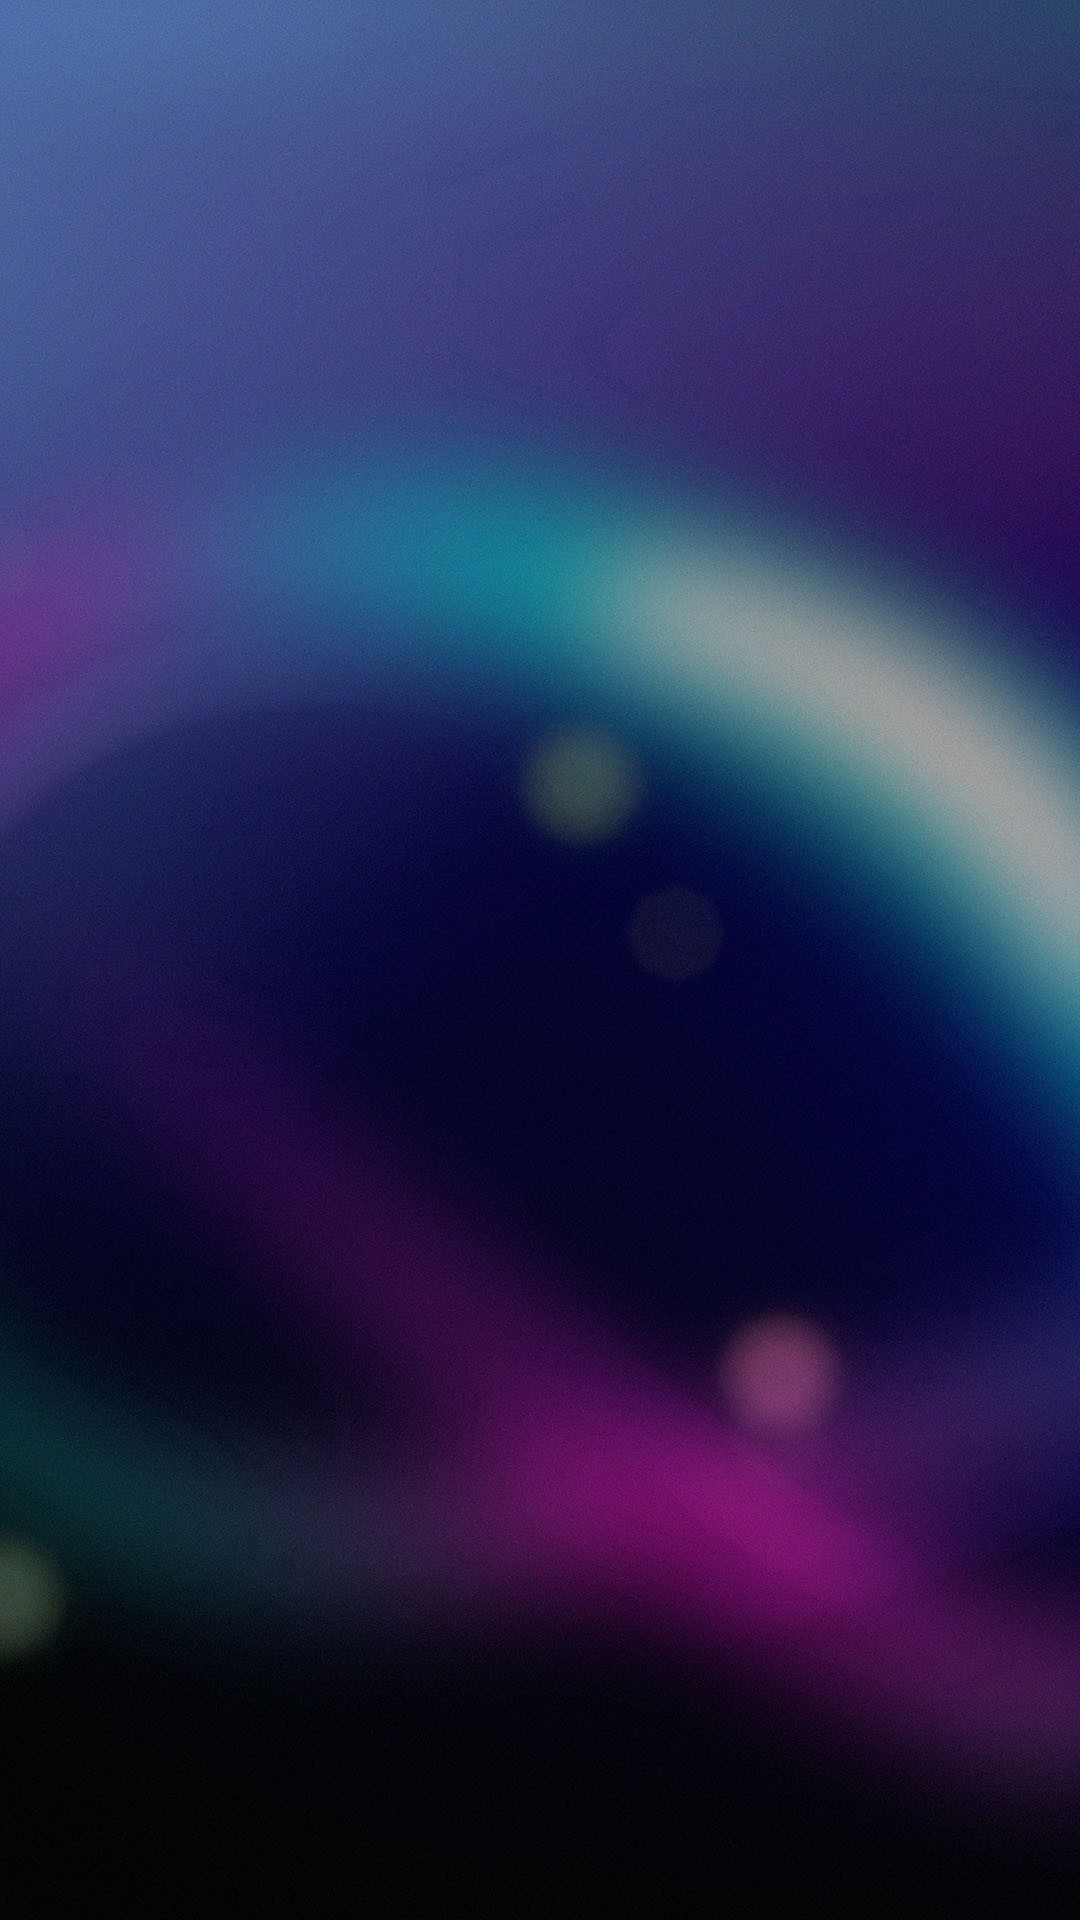 1080x1920 Blue Purple Blurry Lines Android Wallpaper ...